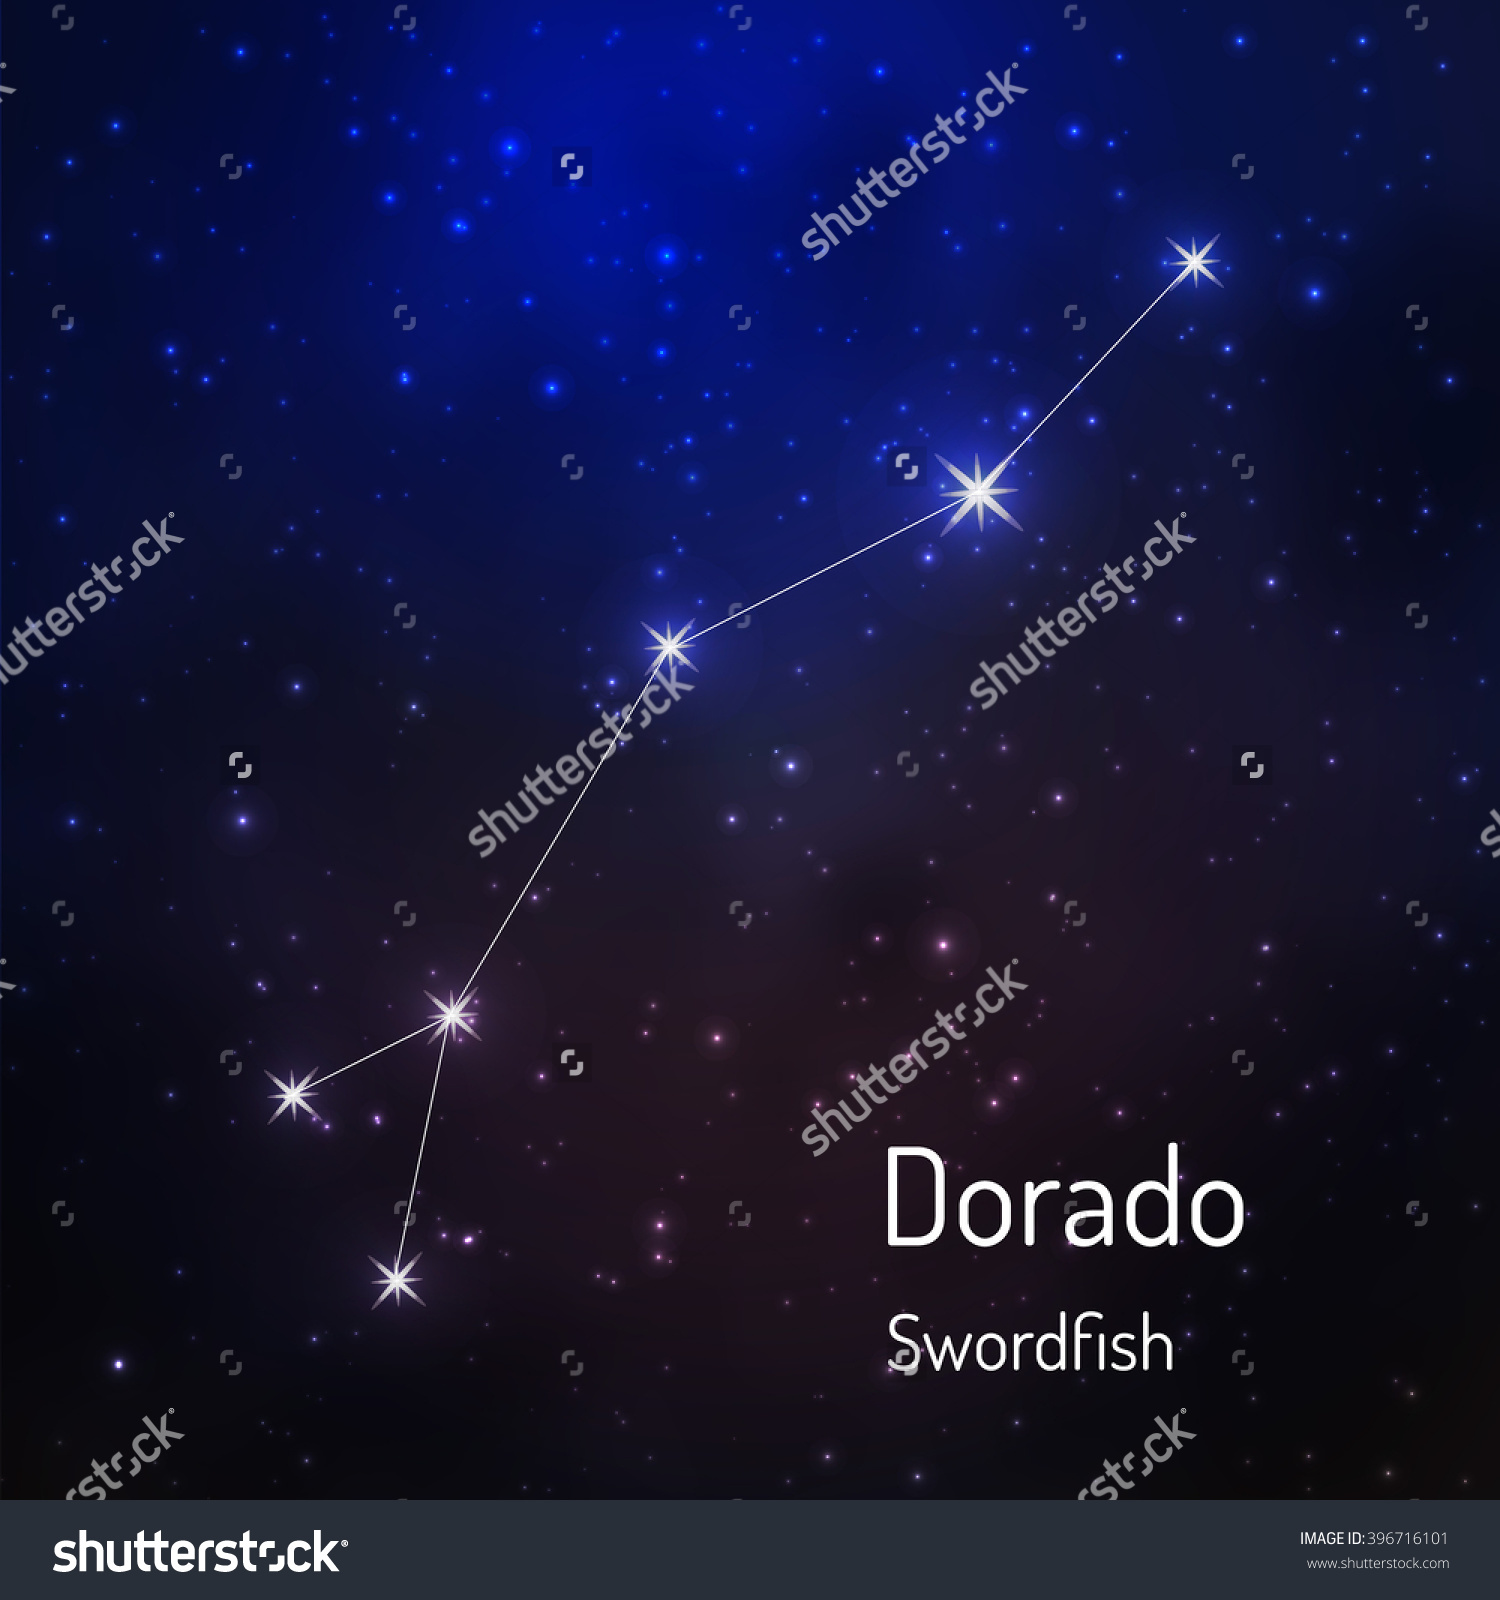 Dorado Swordfish Constellation Night Starry Sky Stock.